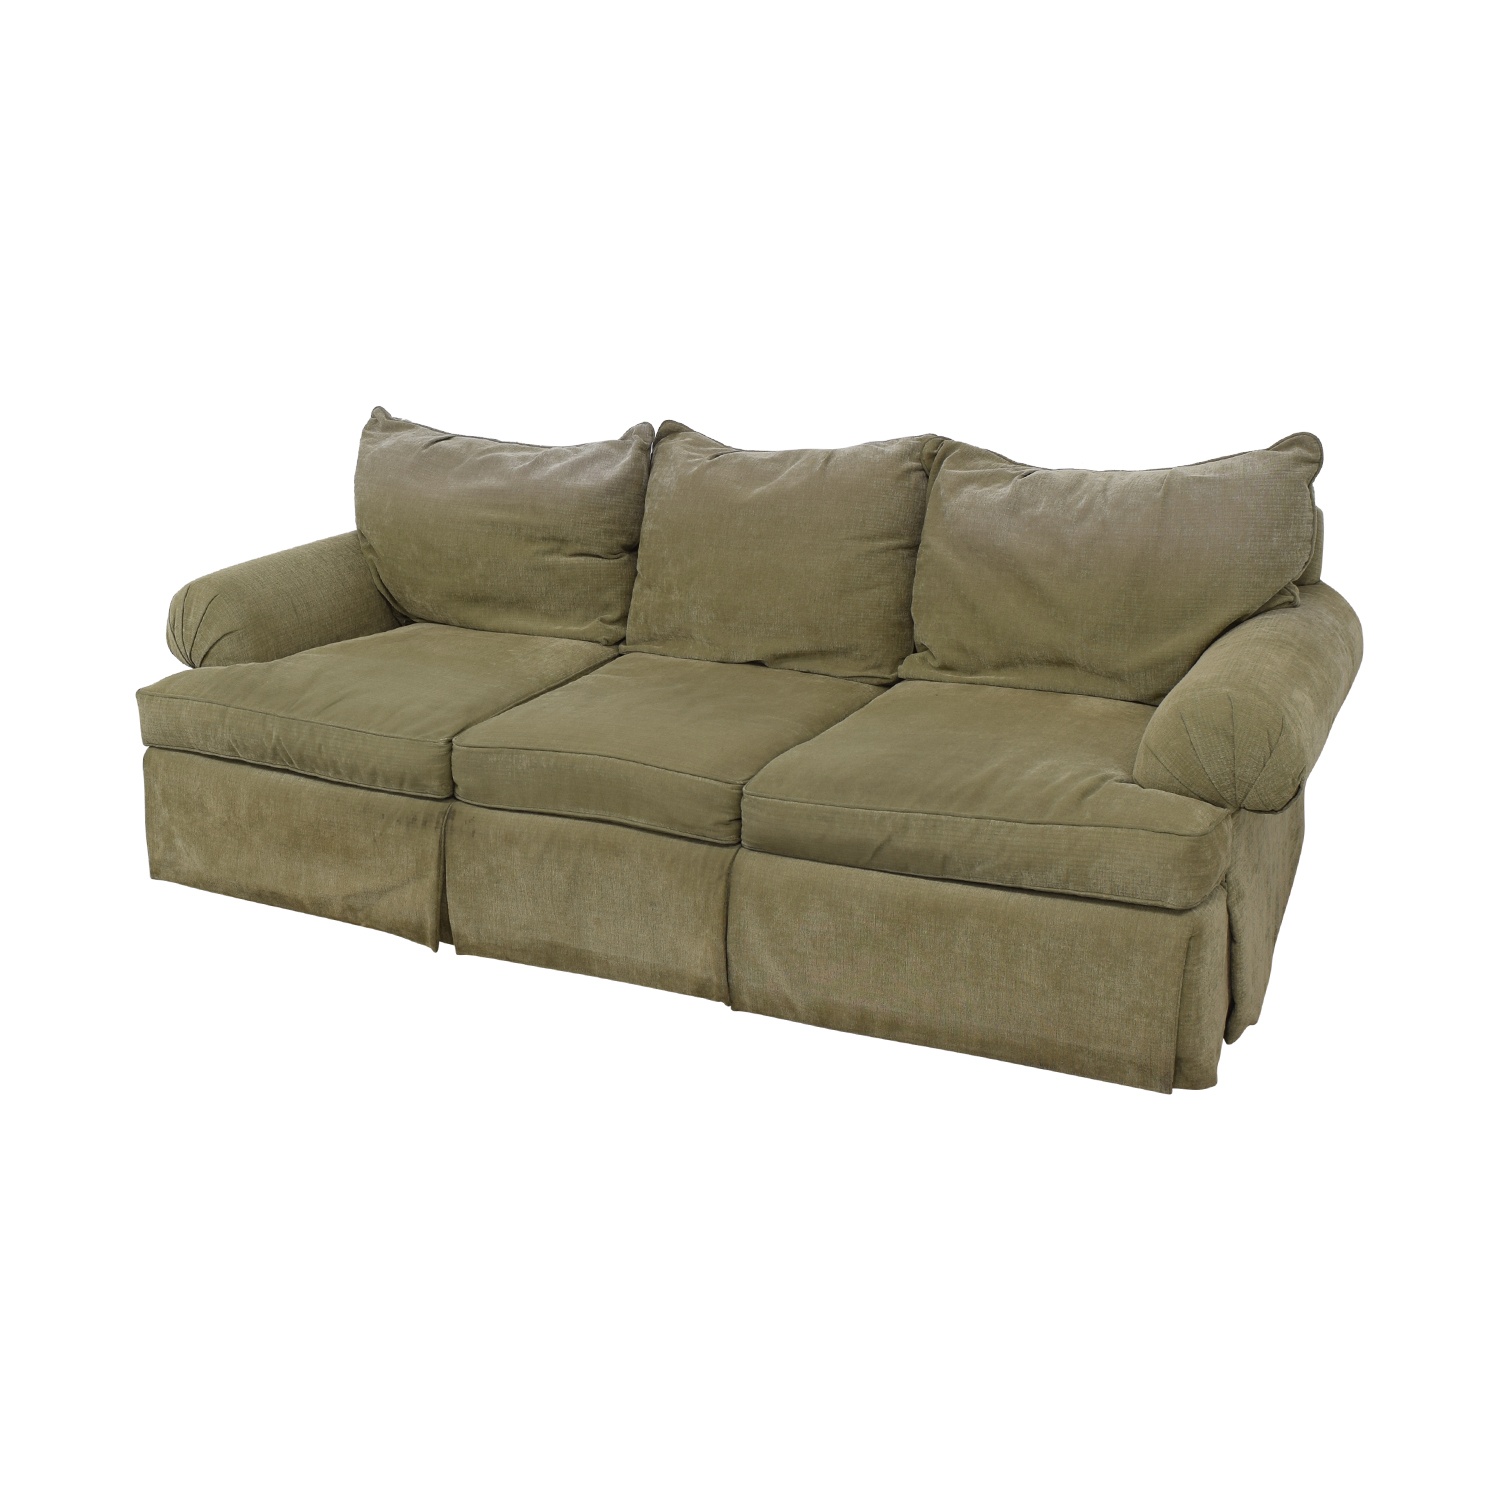 Bernhardt Bernhardt Three-Cushion Sofa dimensions